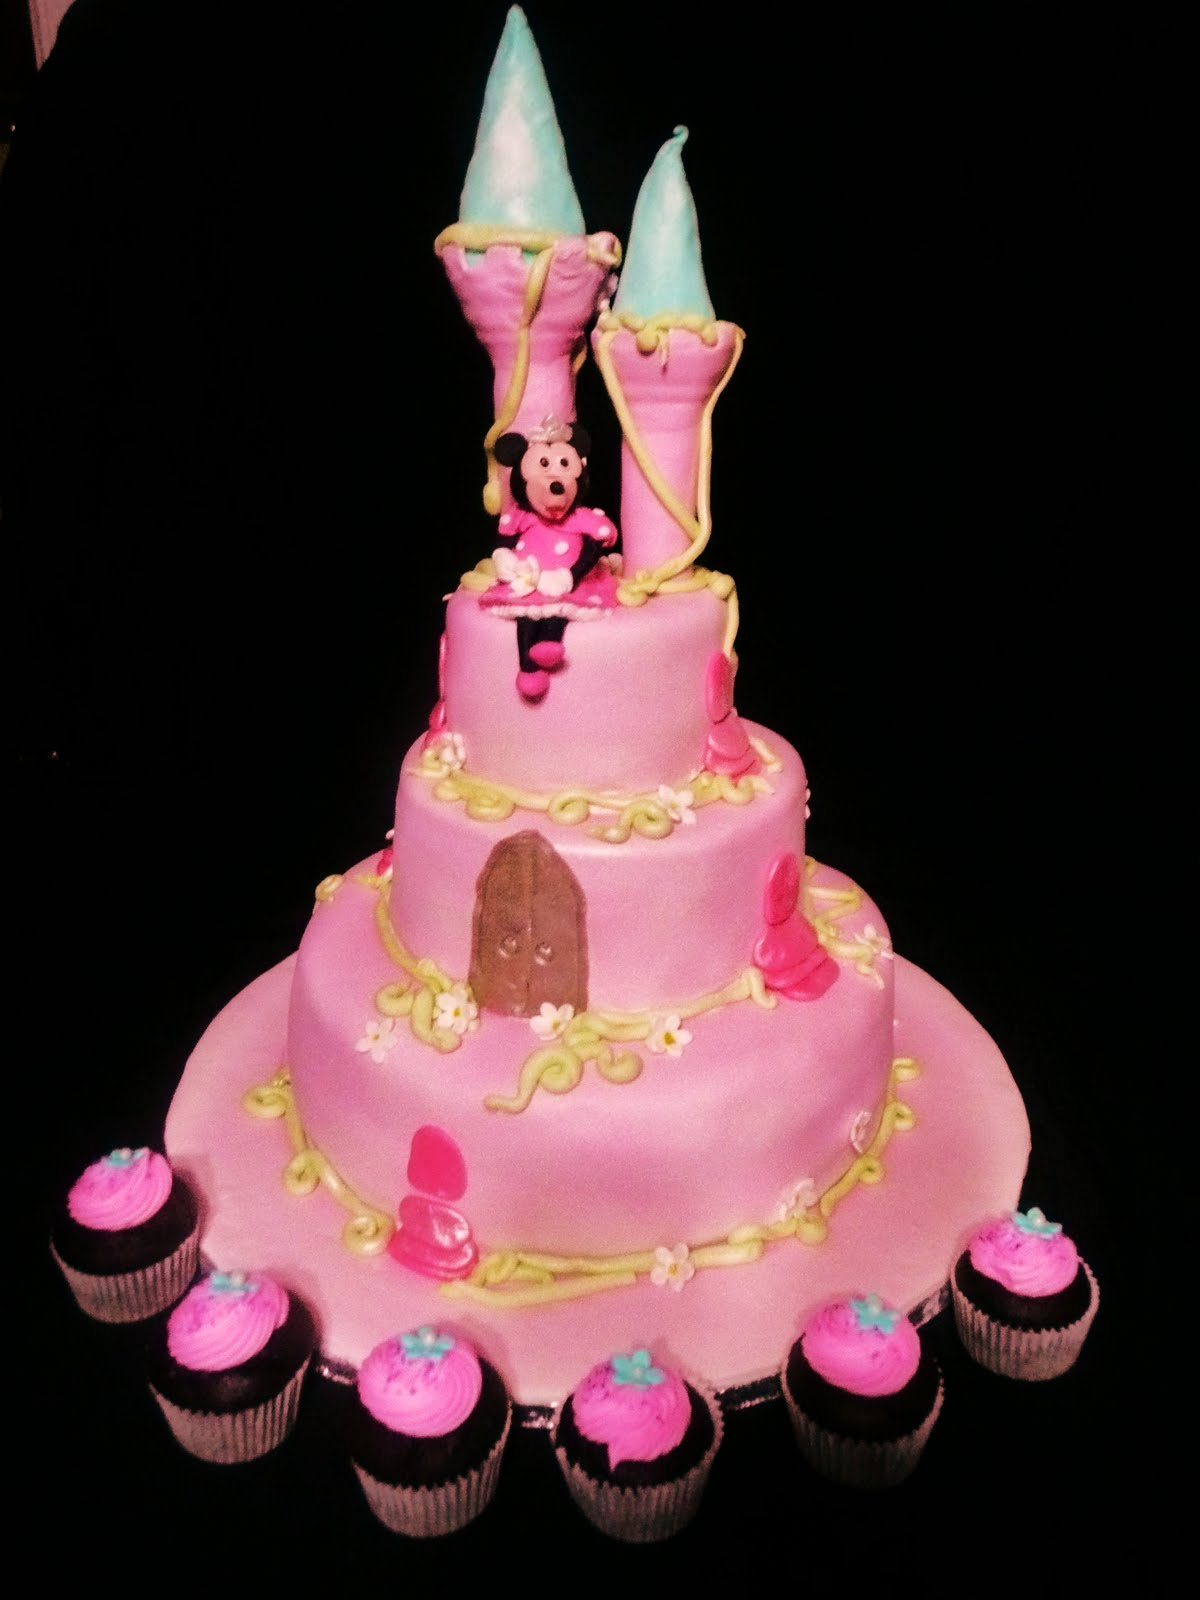 Birthday Cake Pics For Little Girl : Little Girl Birthday Cakes